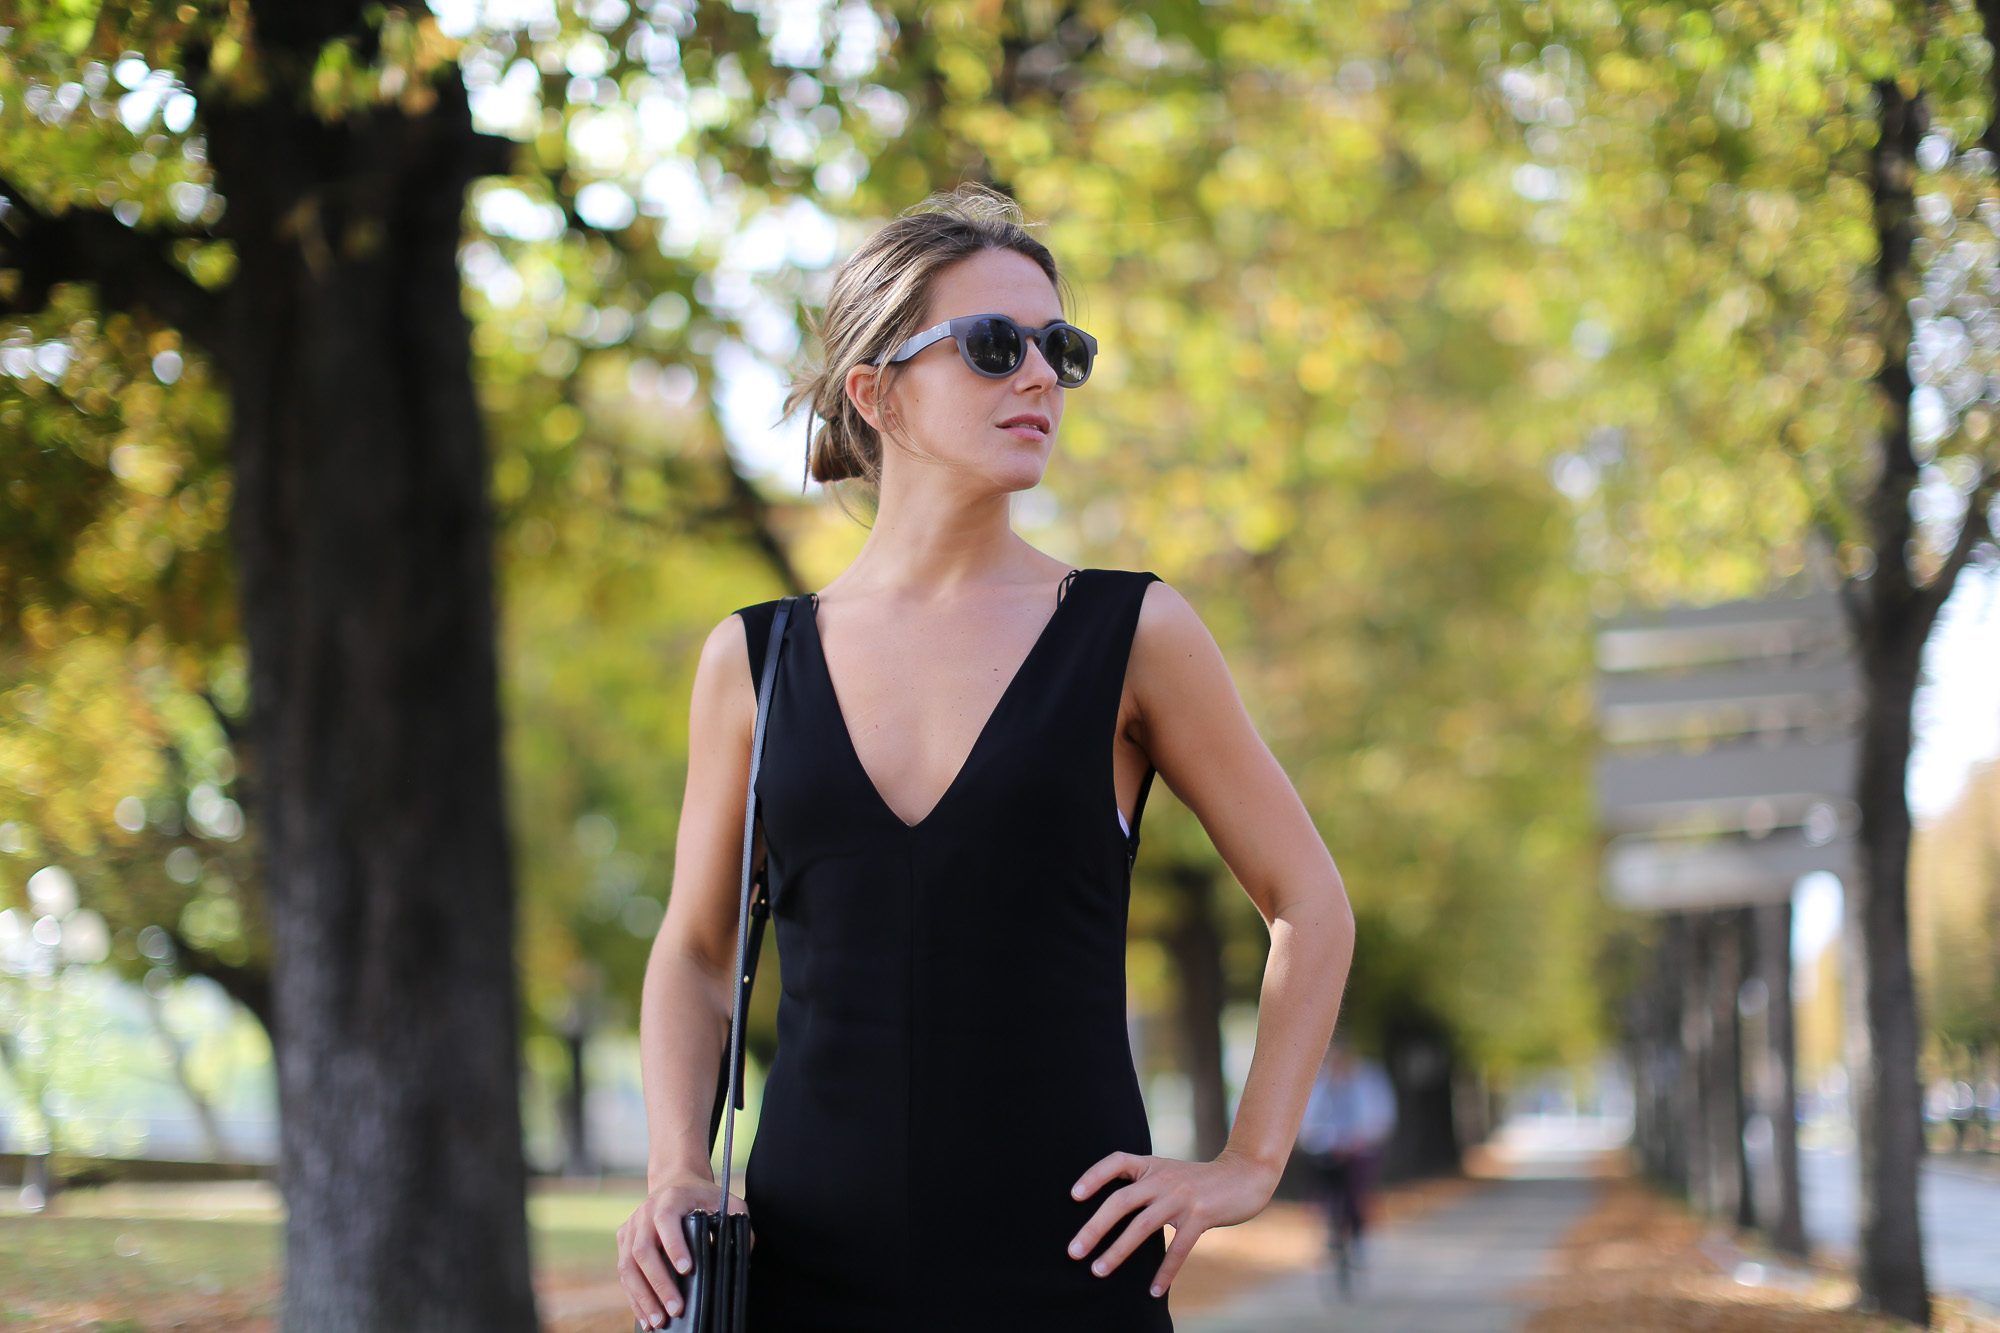 Clochet-paris-fashion-week-streetstyle-zara-jumpsuit-sliders-celine-trio-bag-1-3